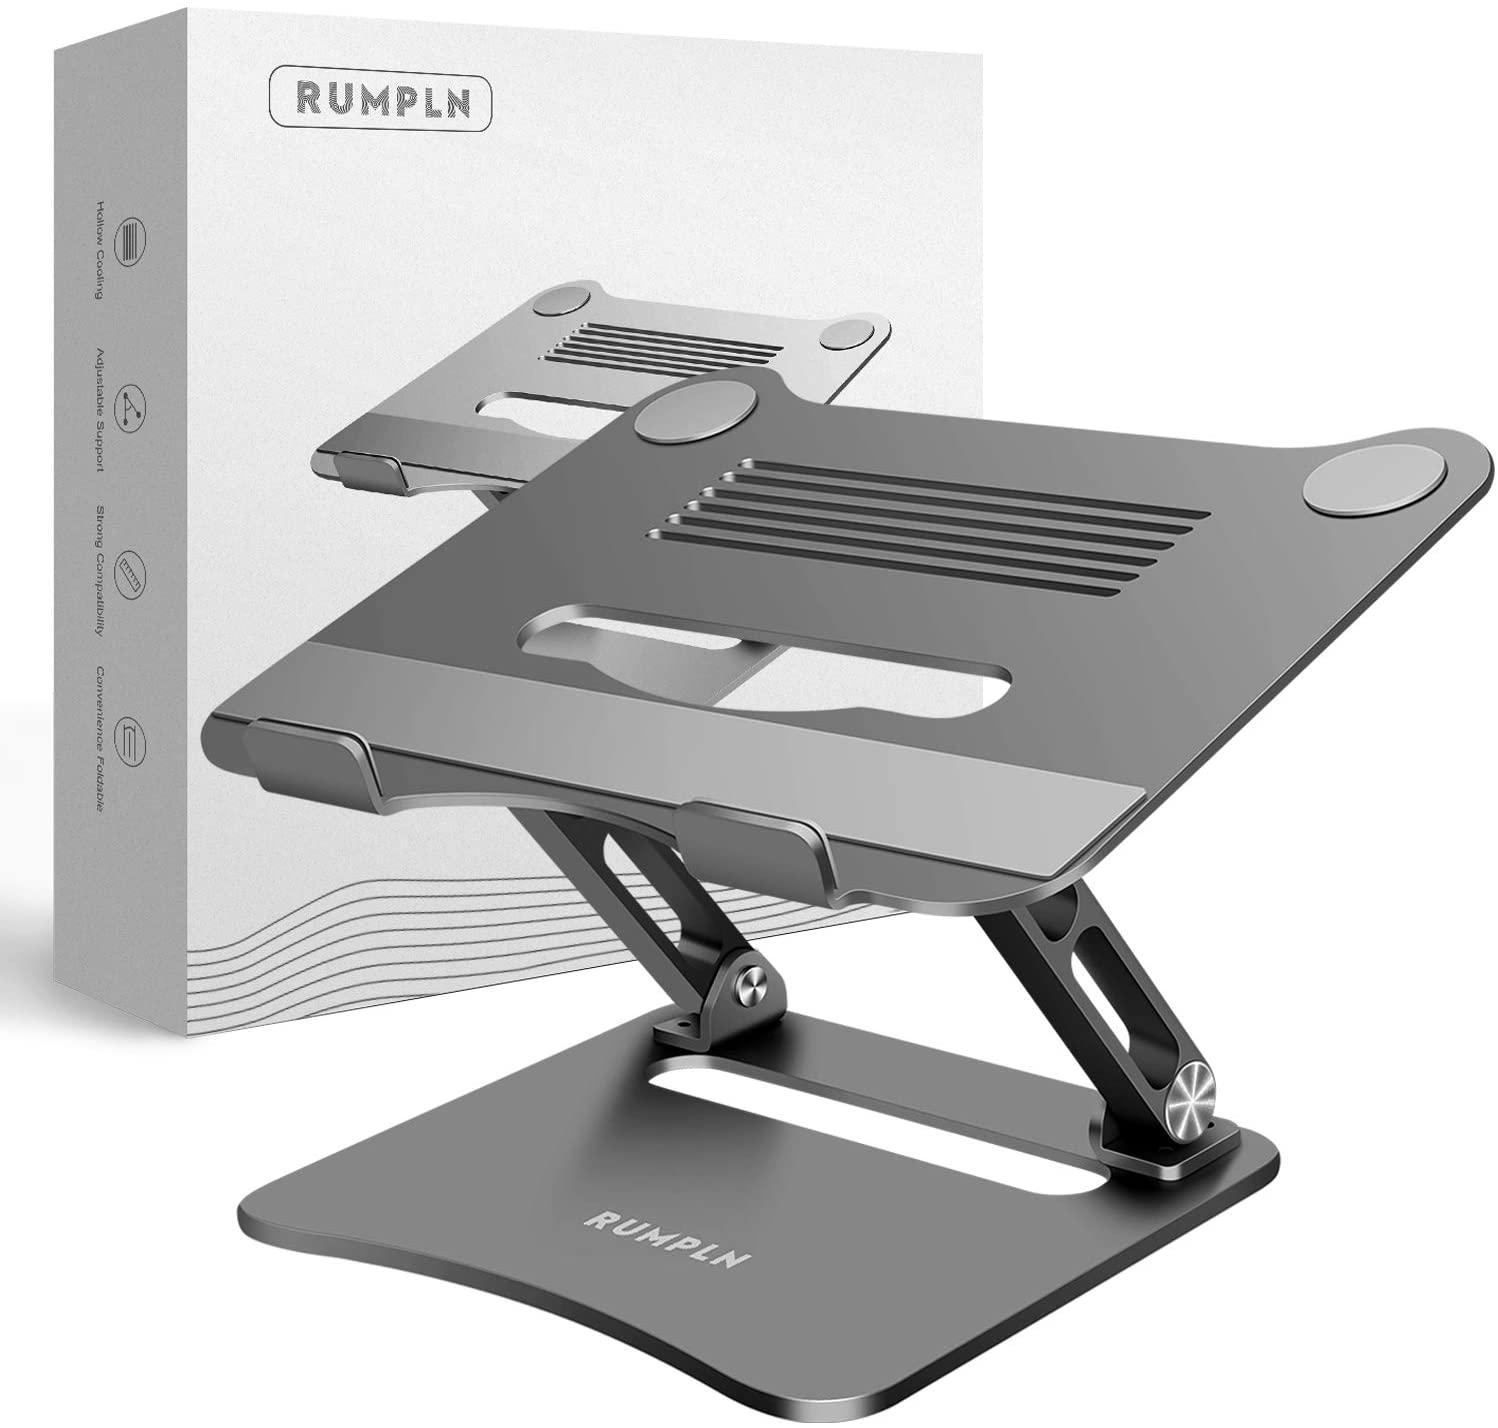 Special Sale Laptop Stand with Adjustable Height and Heat Ventilators, Helps Ensure Proper Work Posture and Alignment